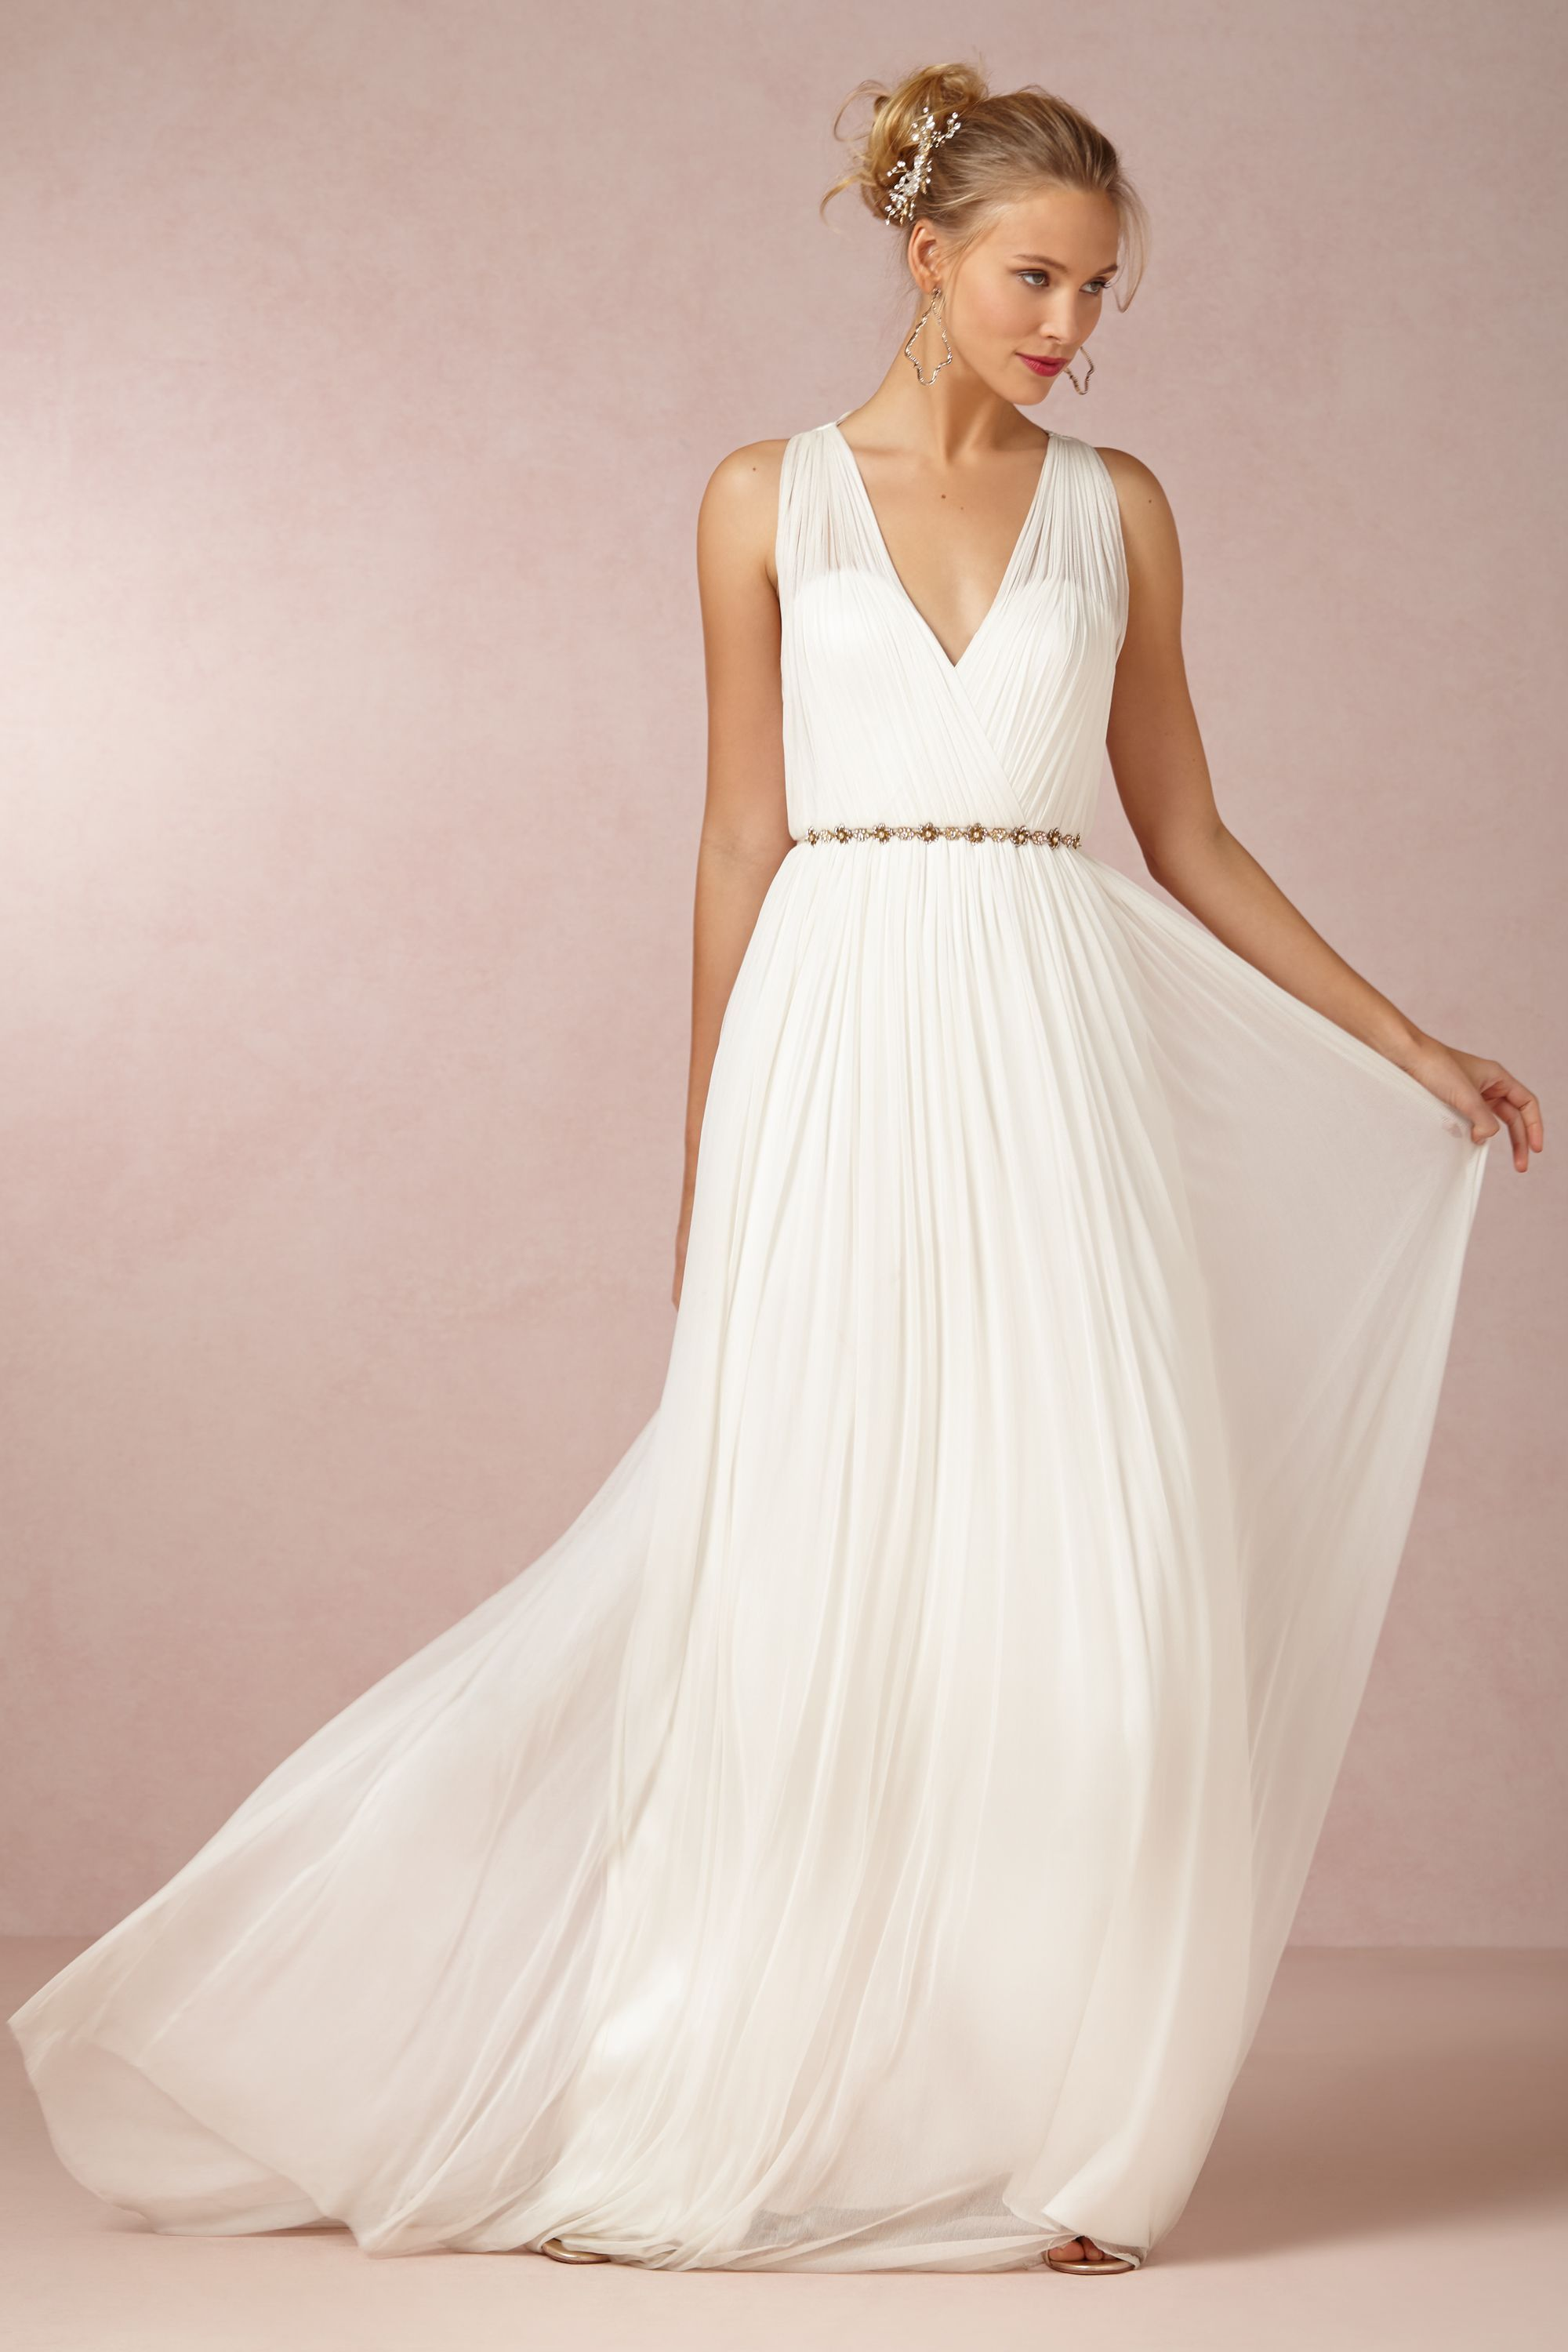 Simple white wedding dresses  Pin by Made From Scratch on wedding  Pinterest   wedding